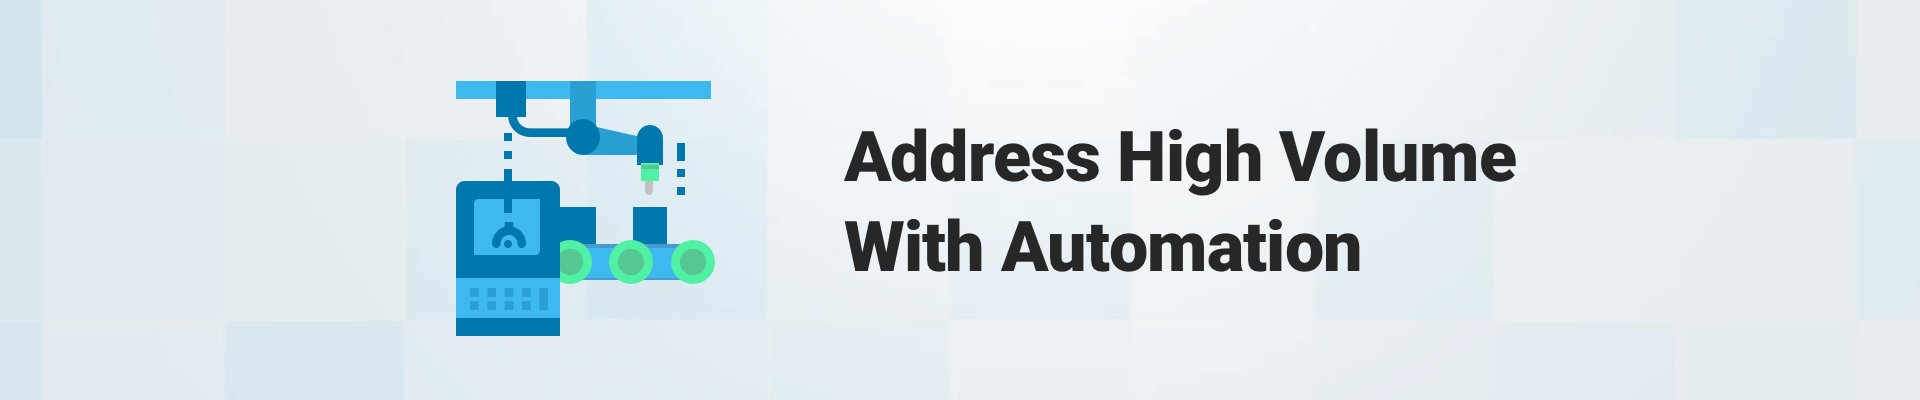 address high volume with automation